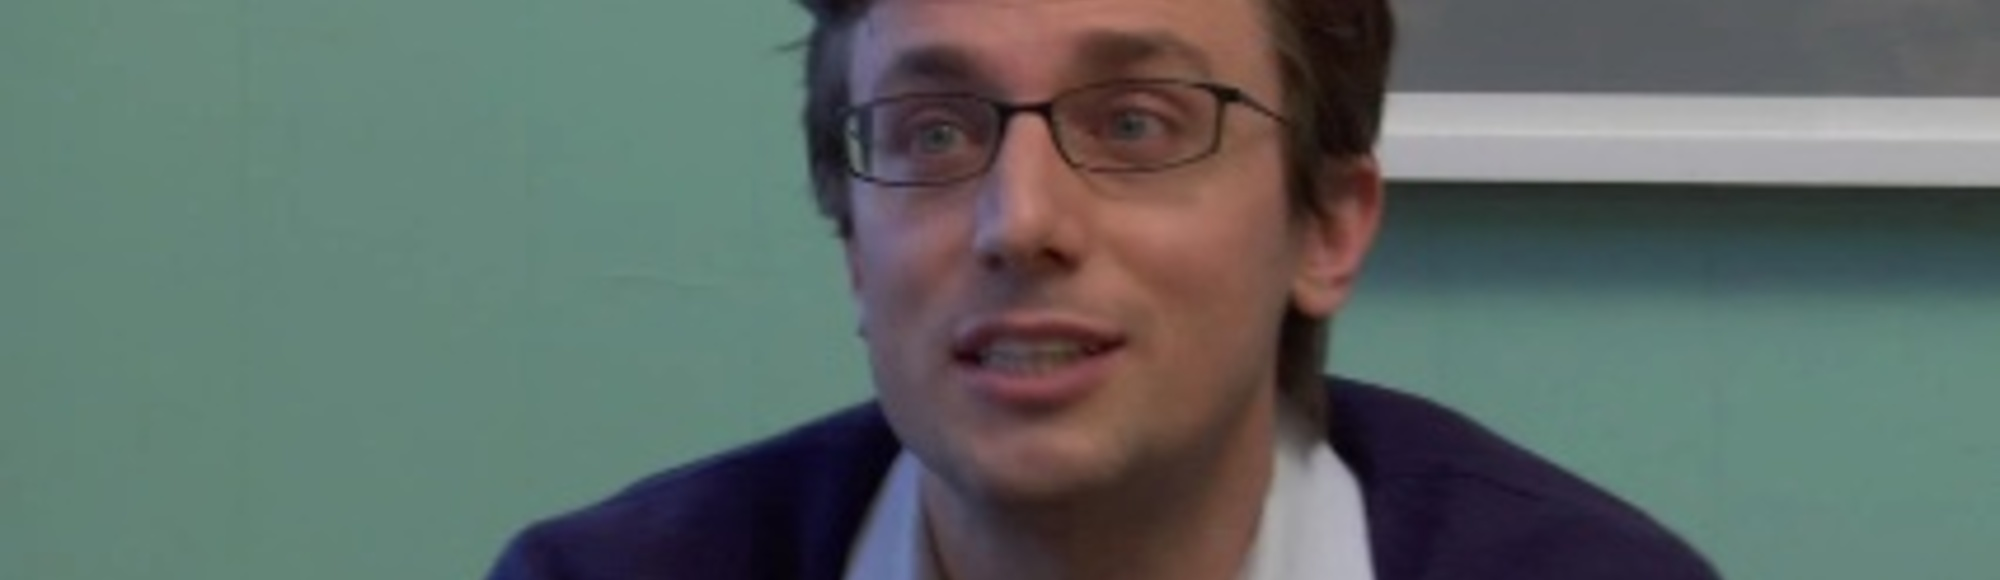 Jonah Peretti: The King of Internet Buzz